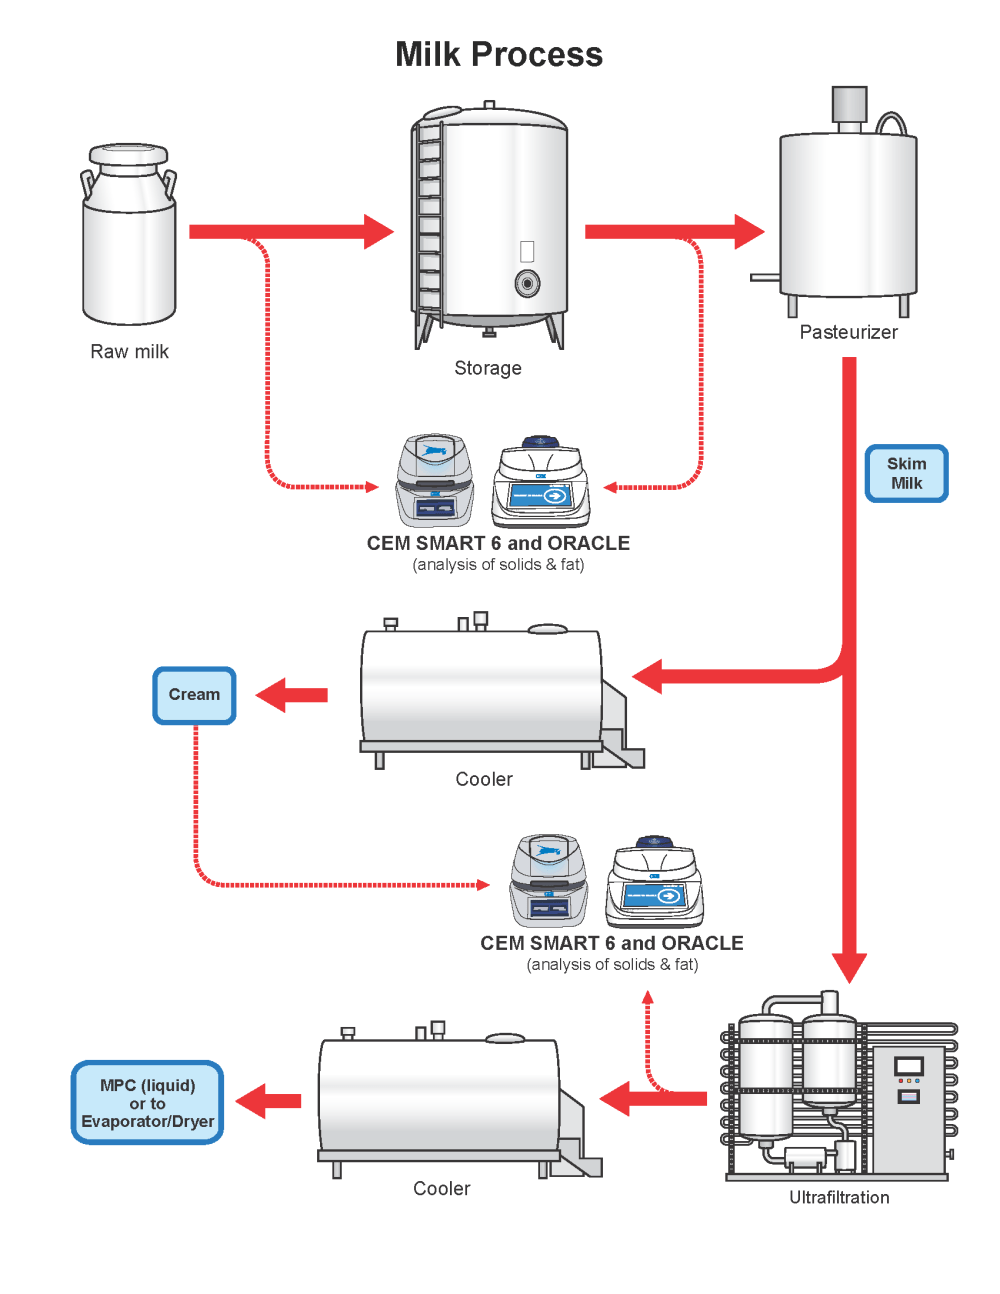 medium resolution of the milk flow chart gives precise details on the production process of milk as well as an explanation of where cem process products can be implemented to